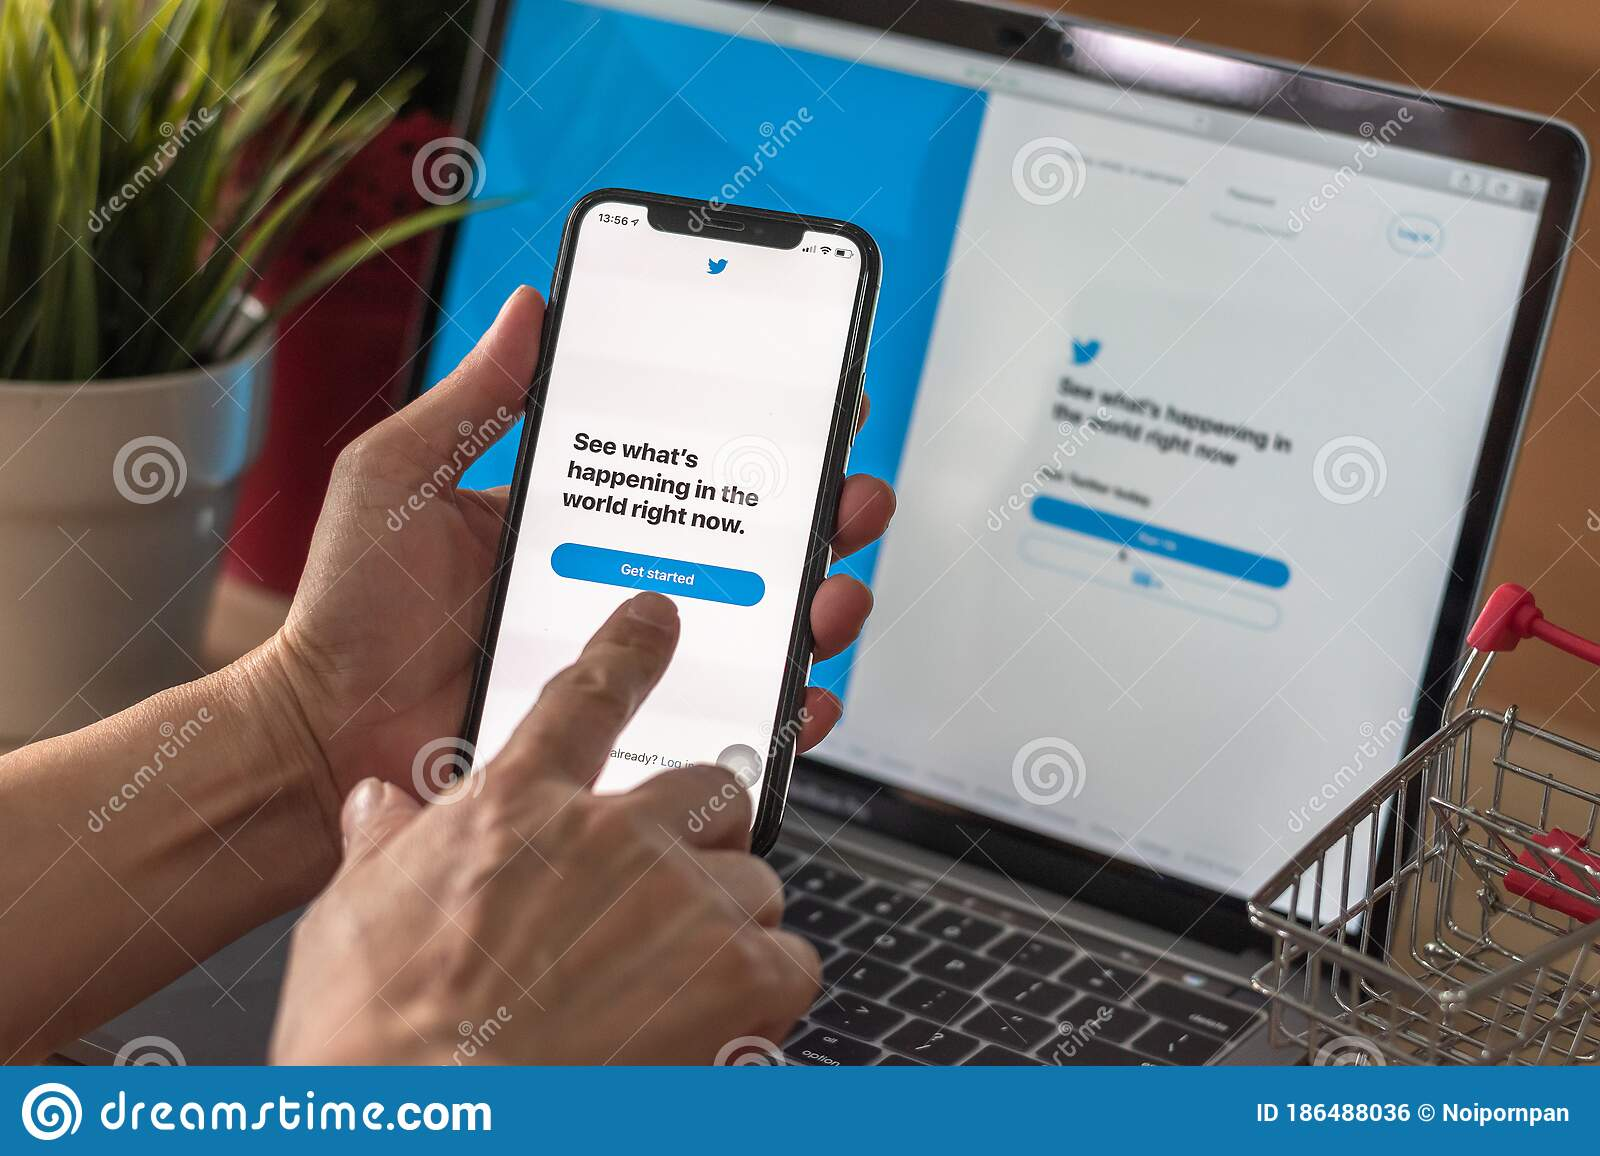 Search social media by phone number